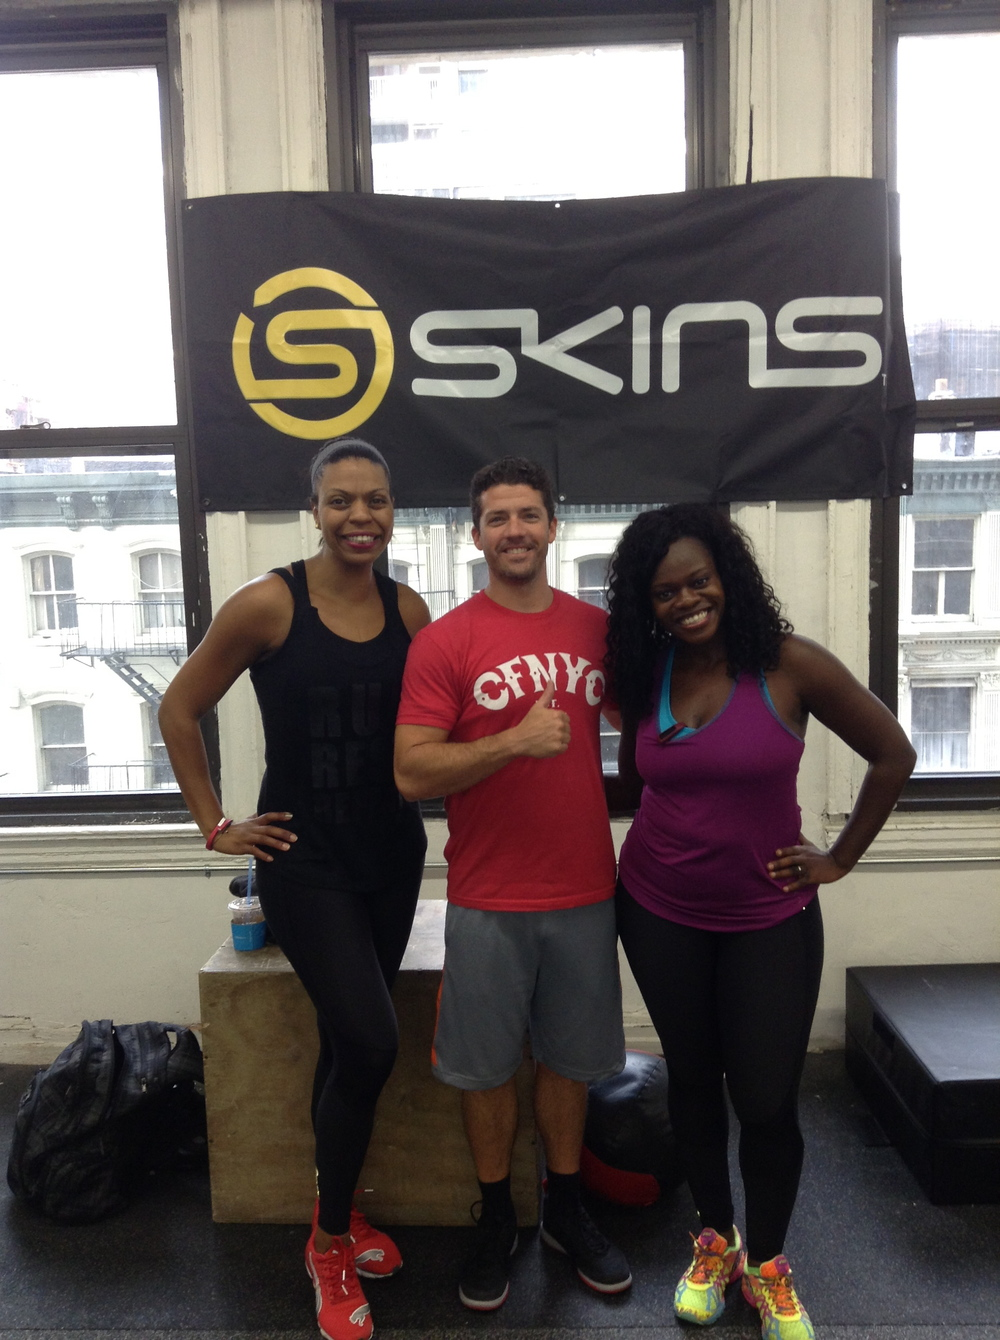 Chris gave a great class! Nadia Murdock Fit on the L, Chris Cunningham Center and Brooklyn Active Mama on the R